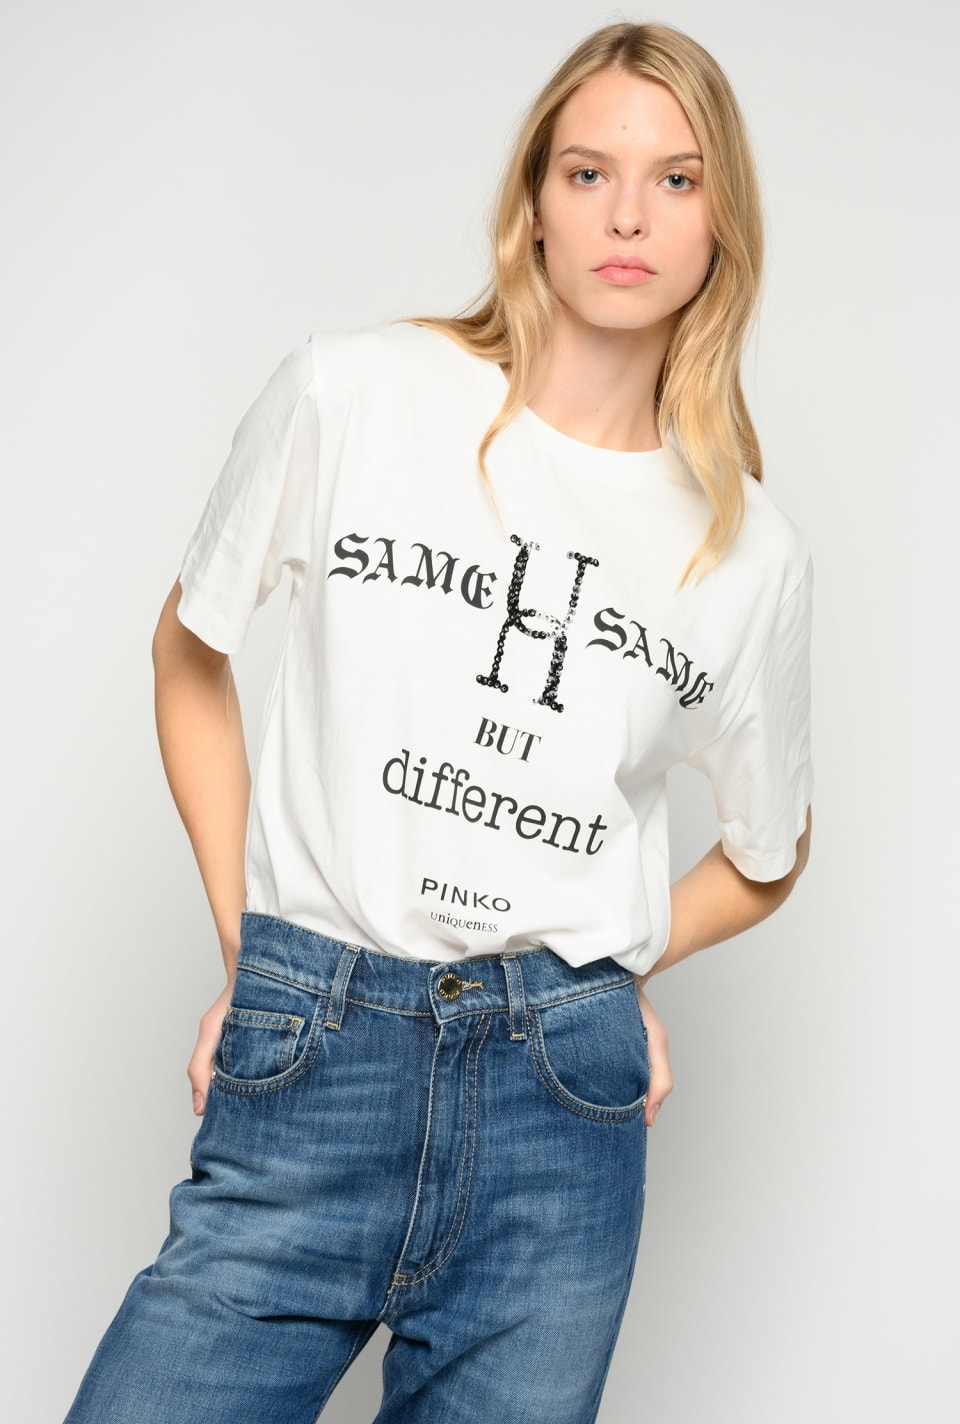 Camiseta Same Same But Different - Pinko